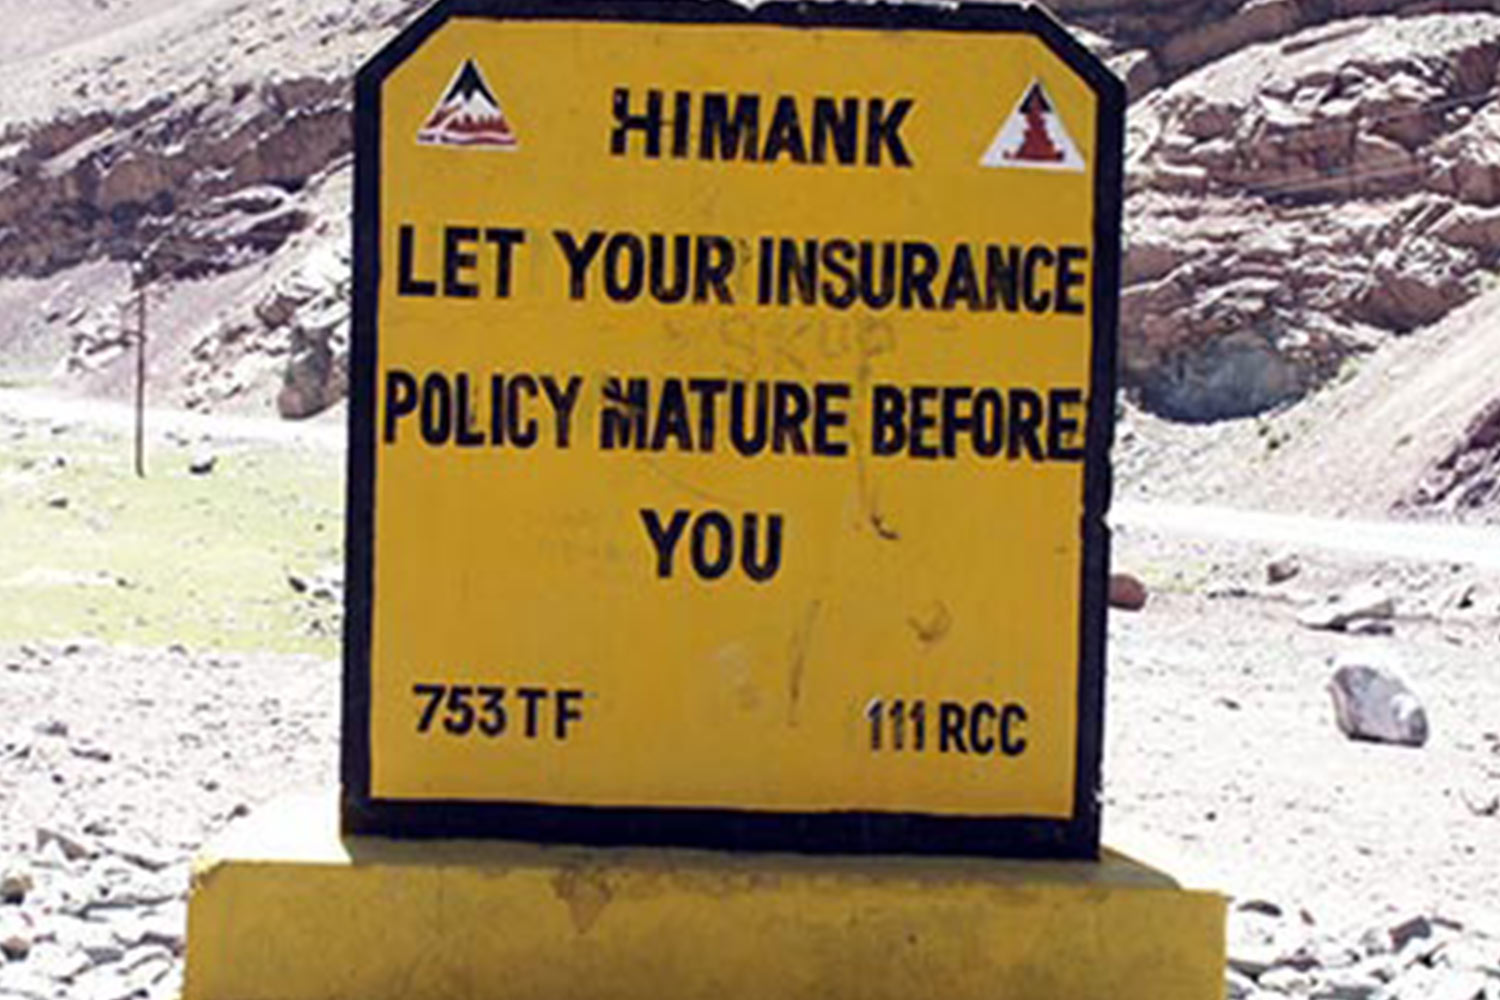 Funny Signboards-Let your insurance policy mature before you